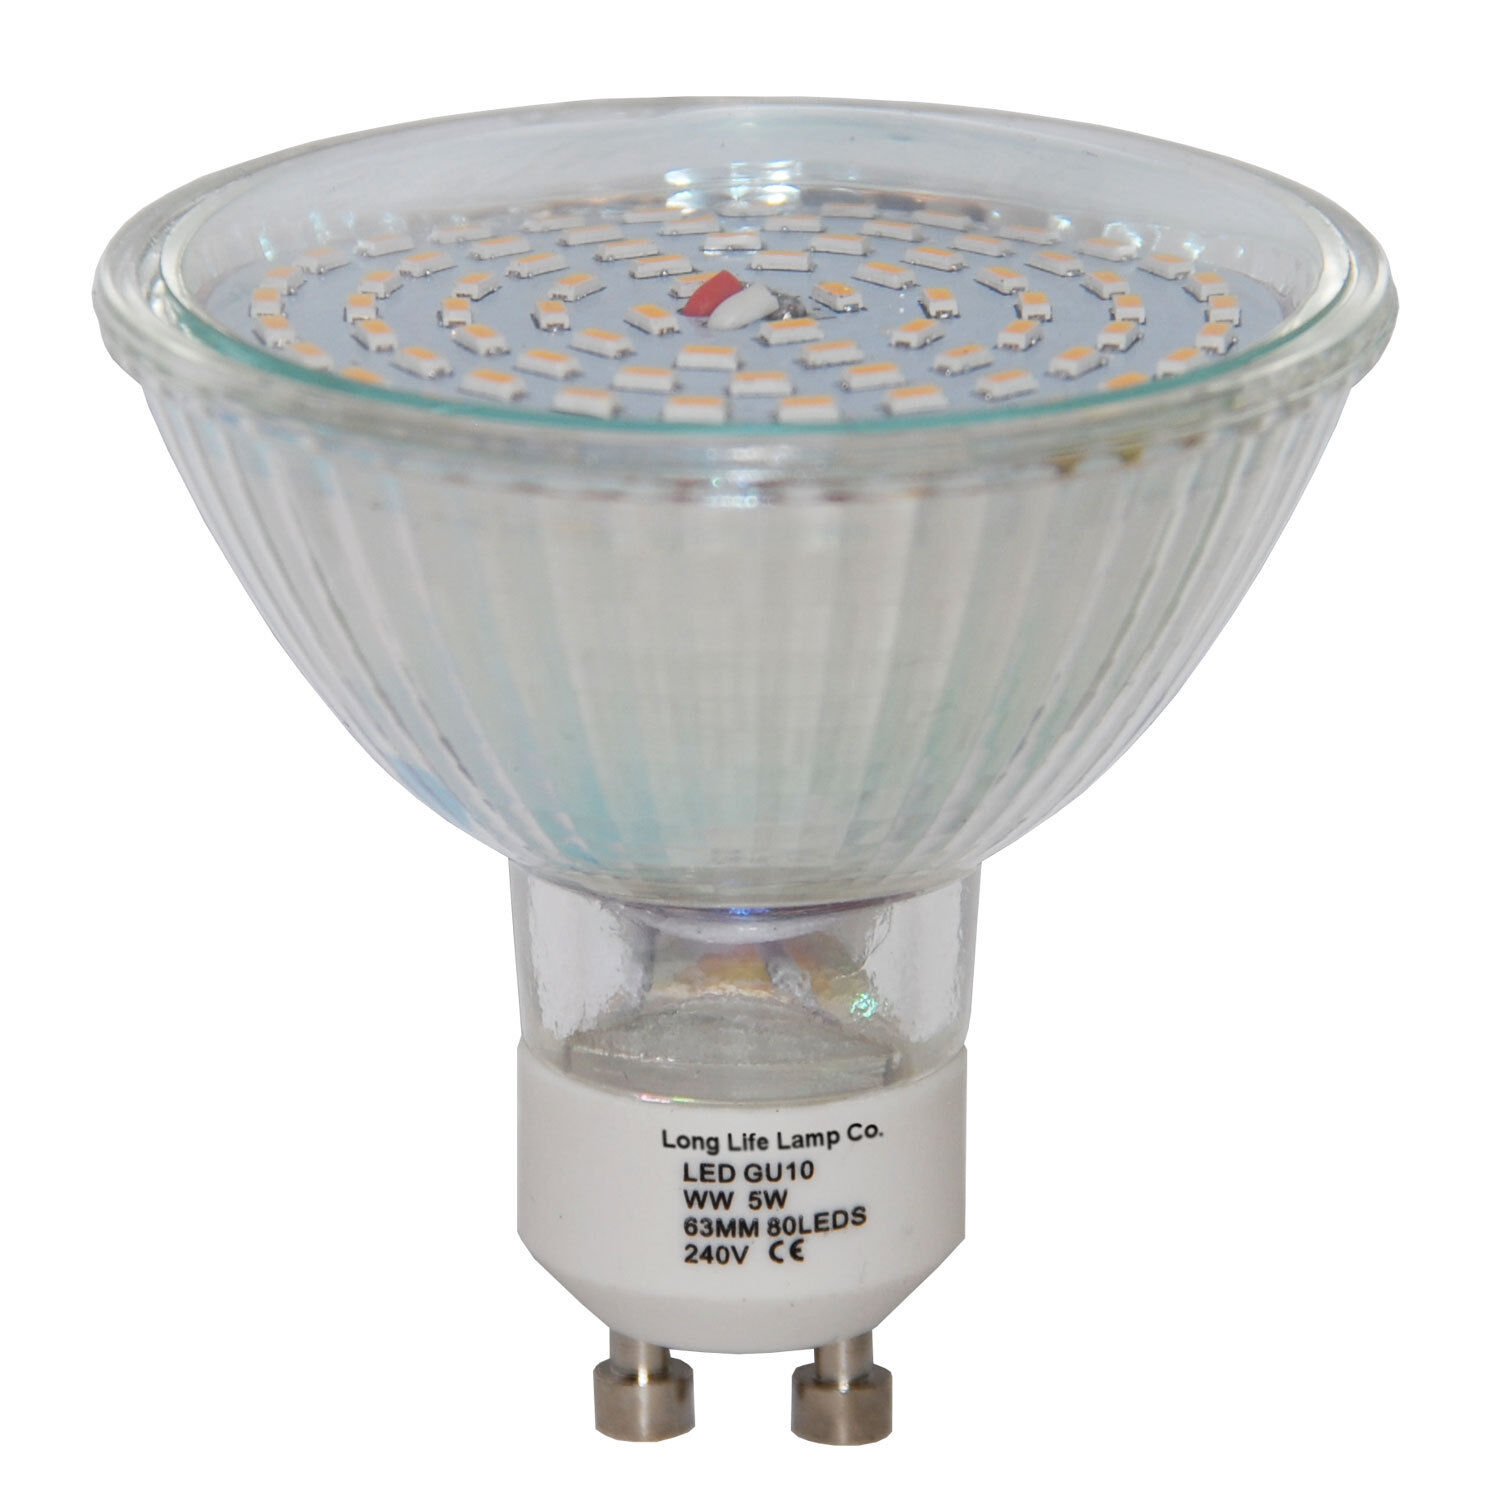 Halogen Gu10 Gu10 Led Replacment Halogen Bulb 63mm 80led 800 Lumens